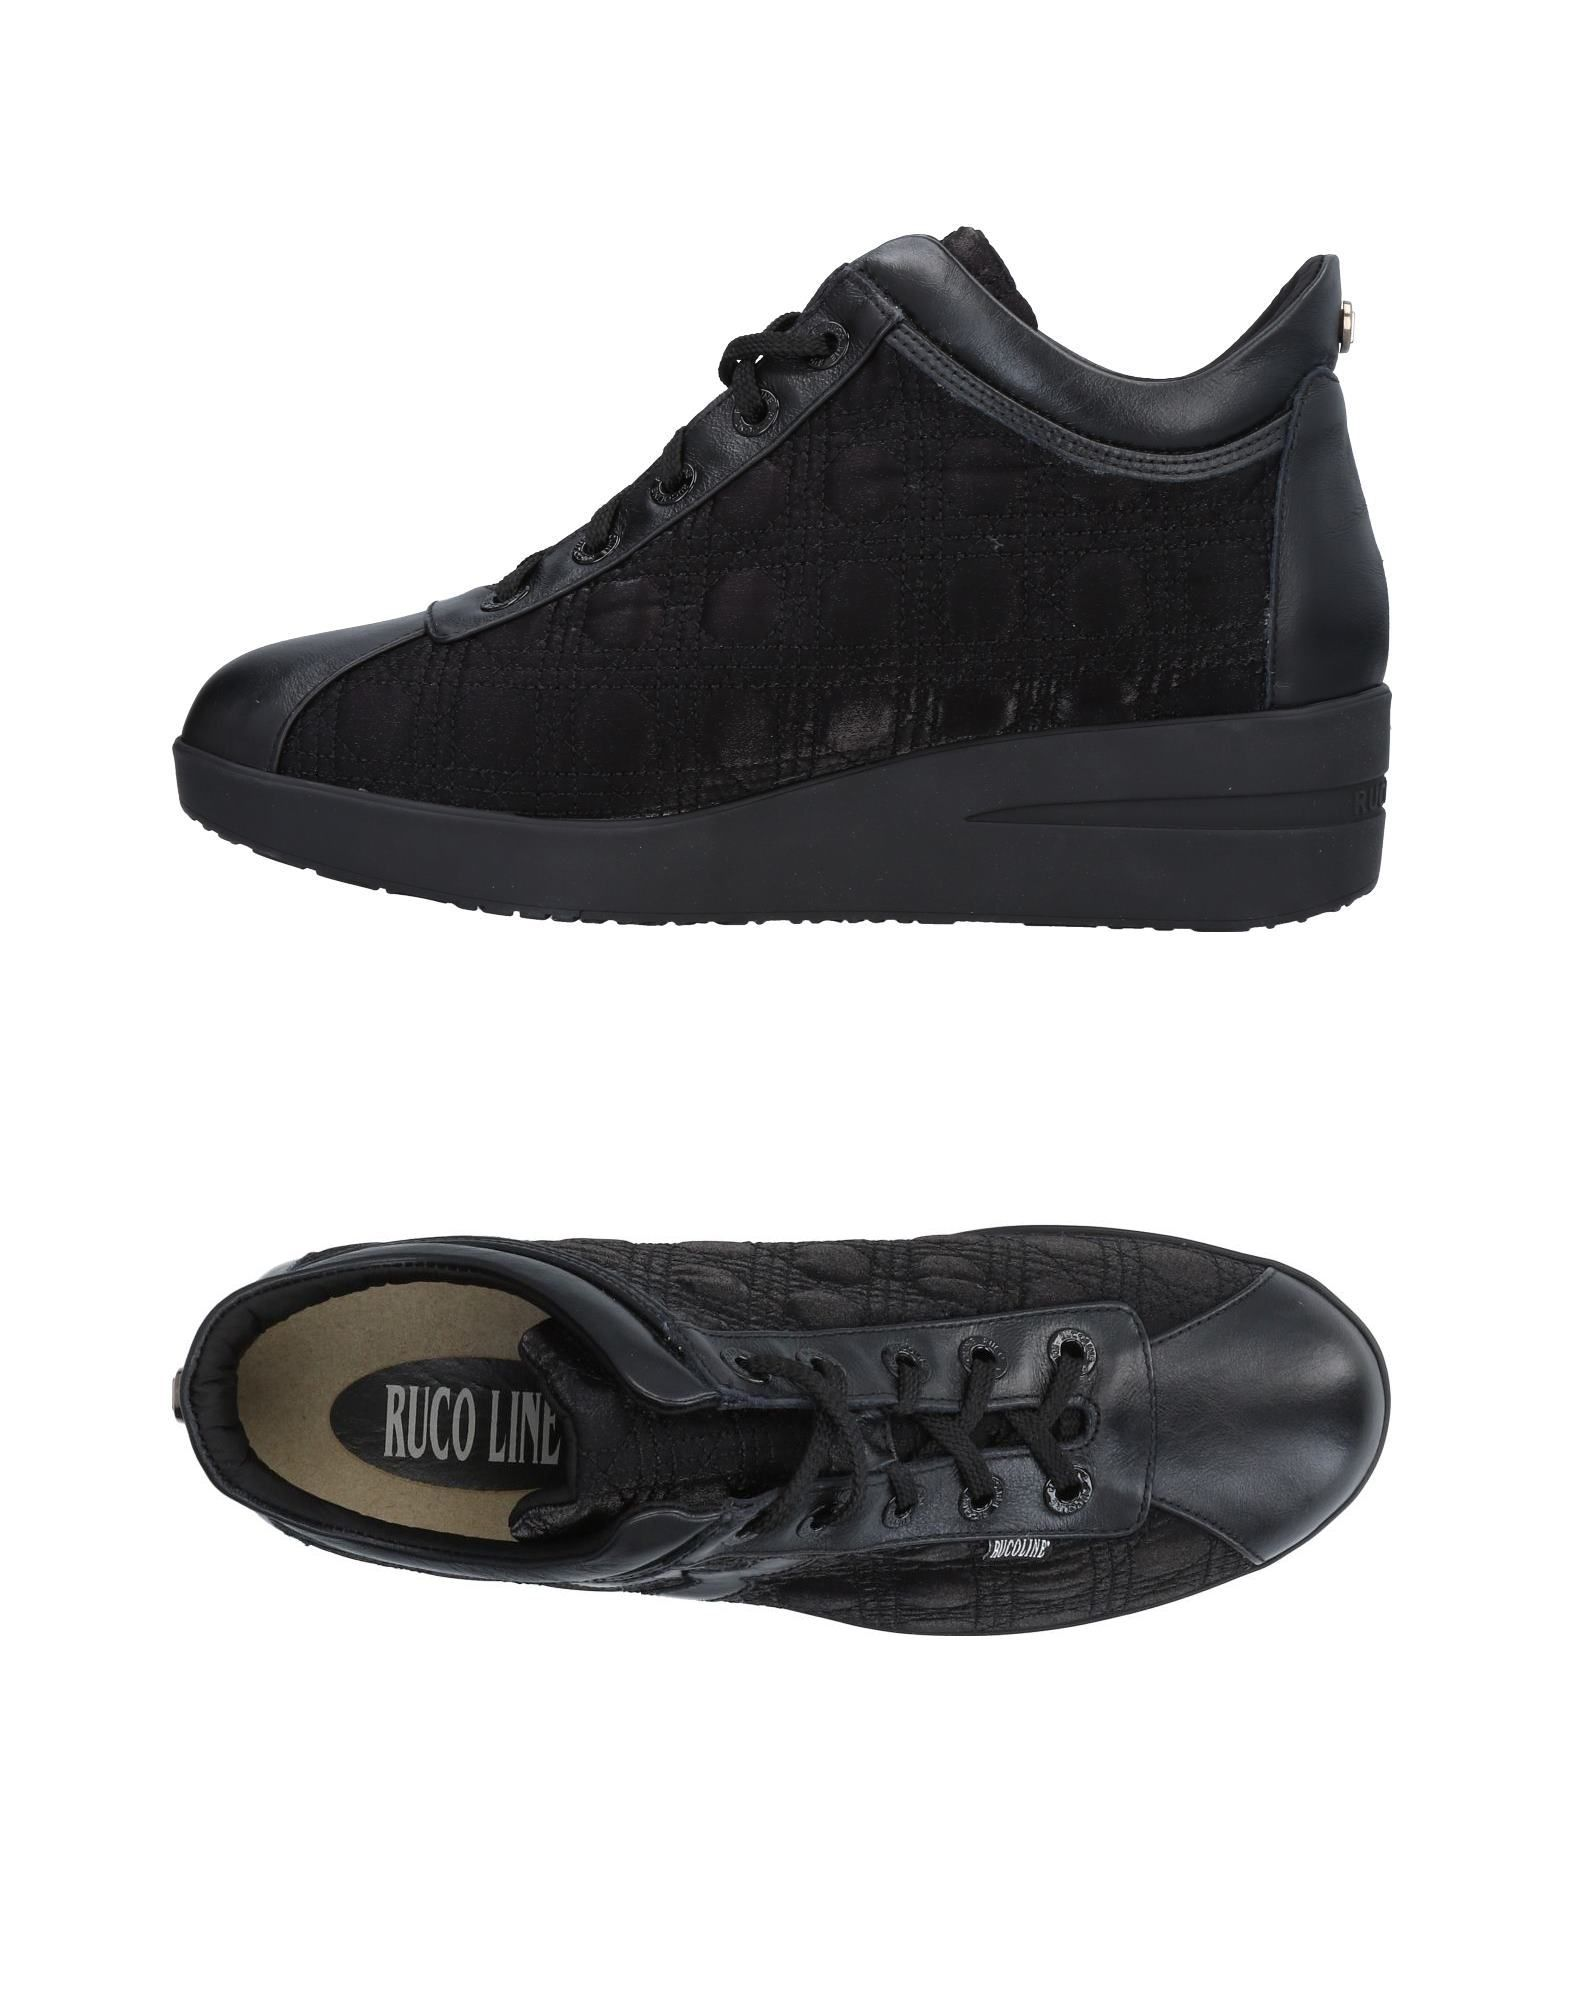 Baskets Ruco Ruco Line Femme - Baskets Ruco Ruco Line Noir Chaussures casual sauvages 496bee